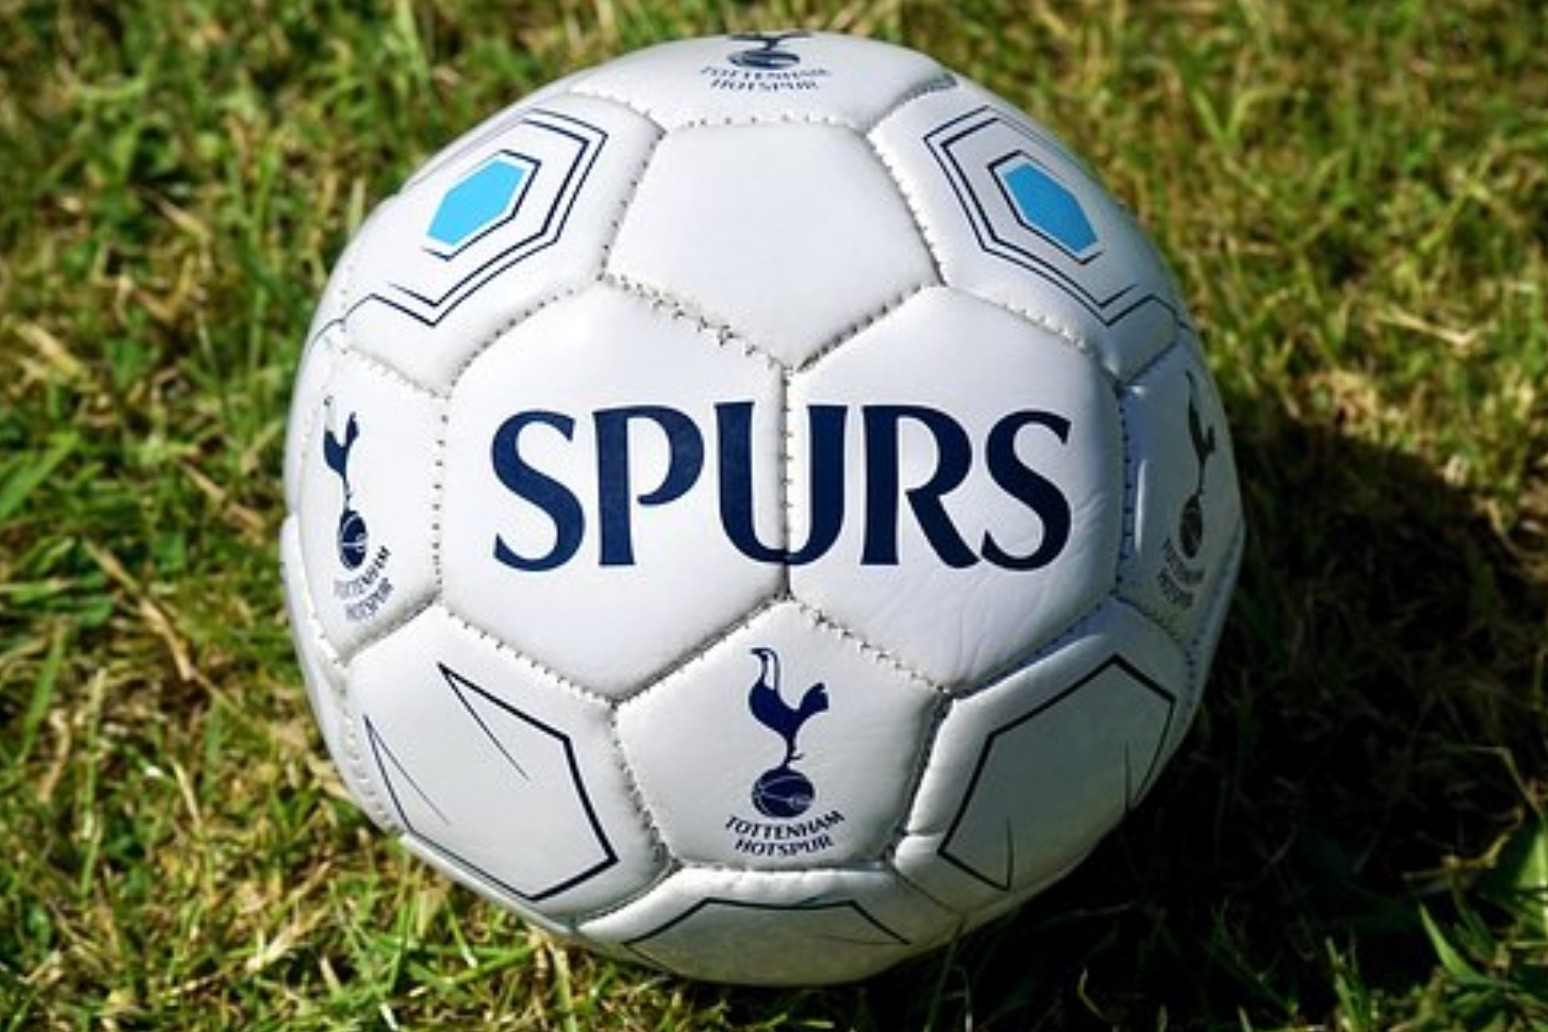 Spurs have slender advantage over City